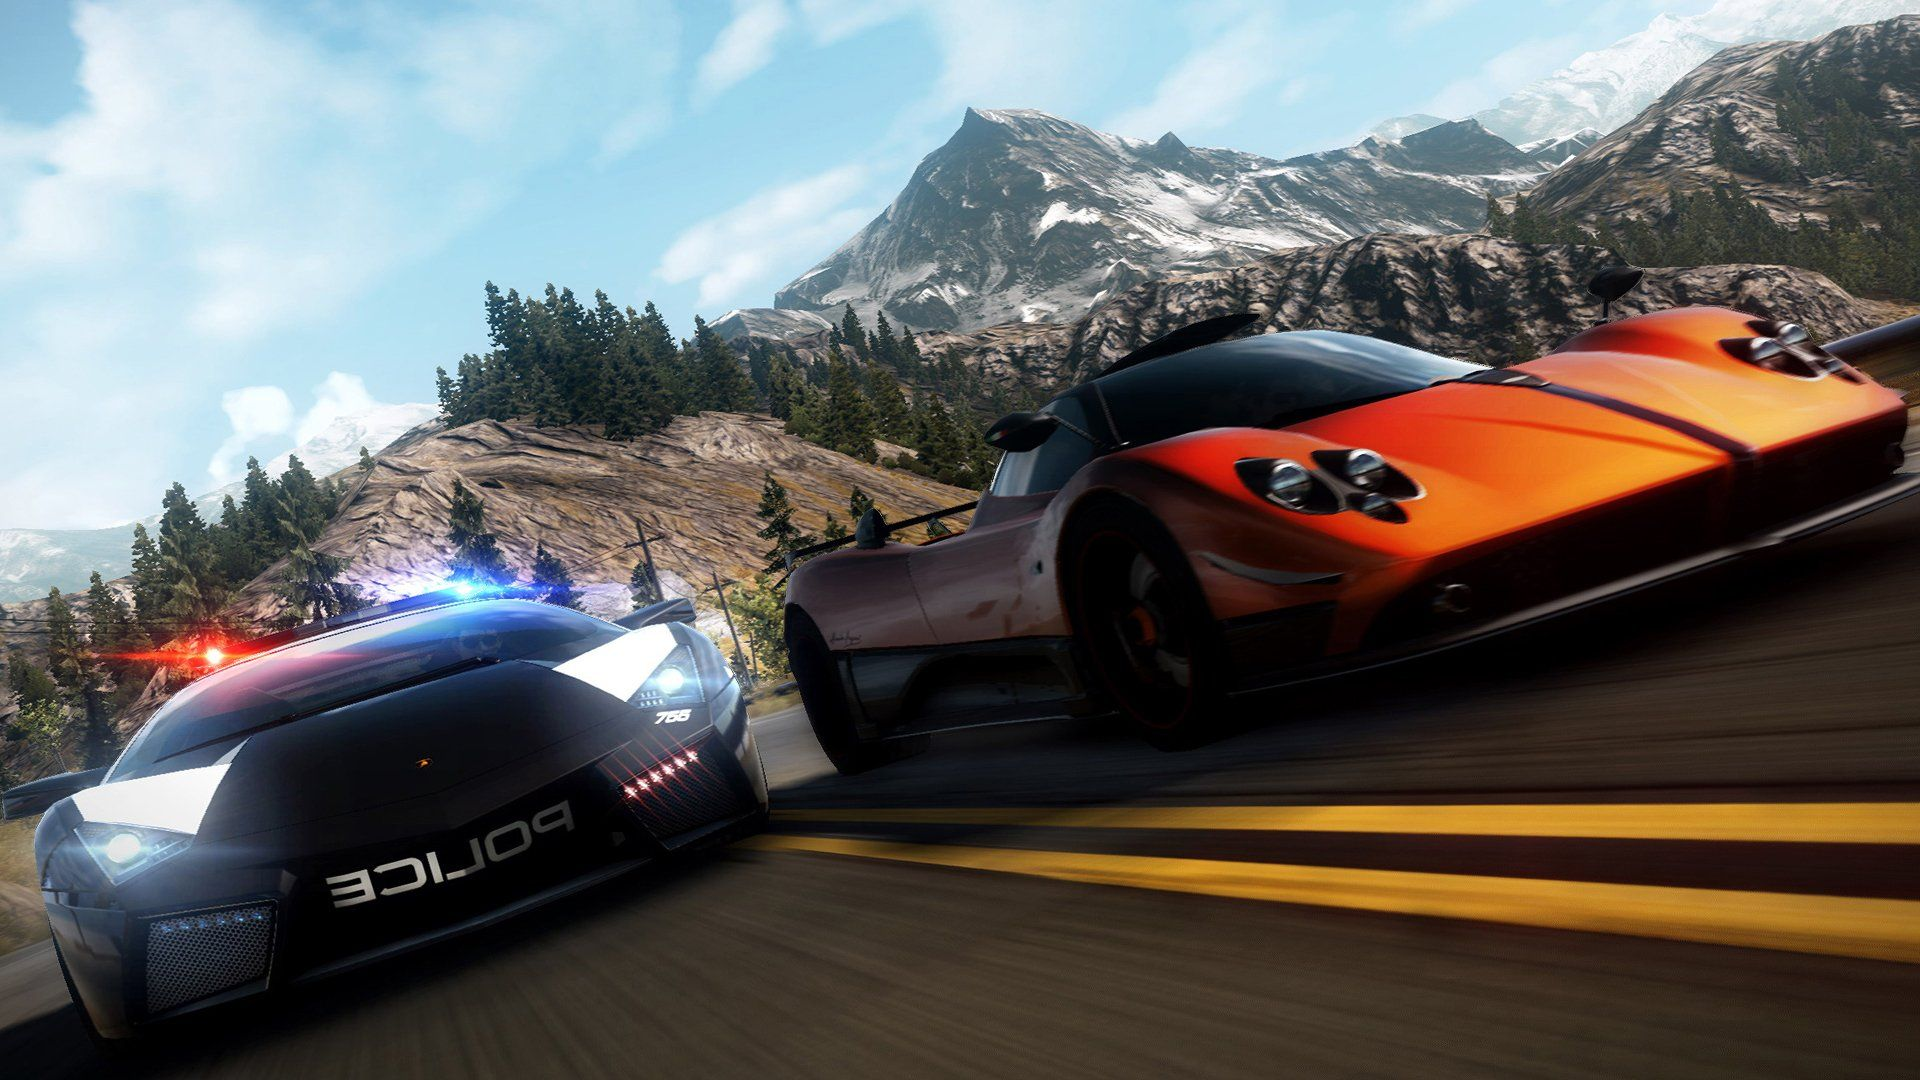 Https Www Keengamer Com Articles News Next Need For Speed Delayed To 2022 Developer Criterion In 2021 Need For Speed Need For Speed Hot Pursuit Need For Speed Games